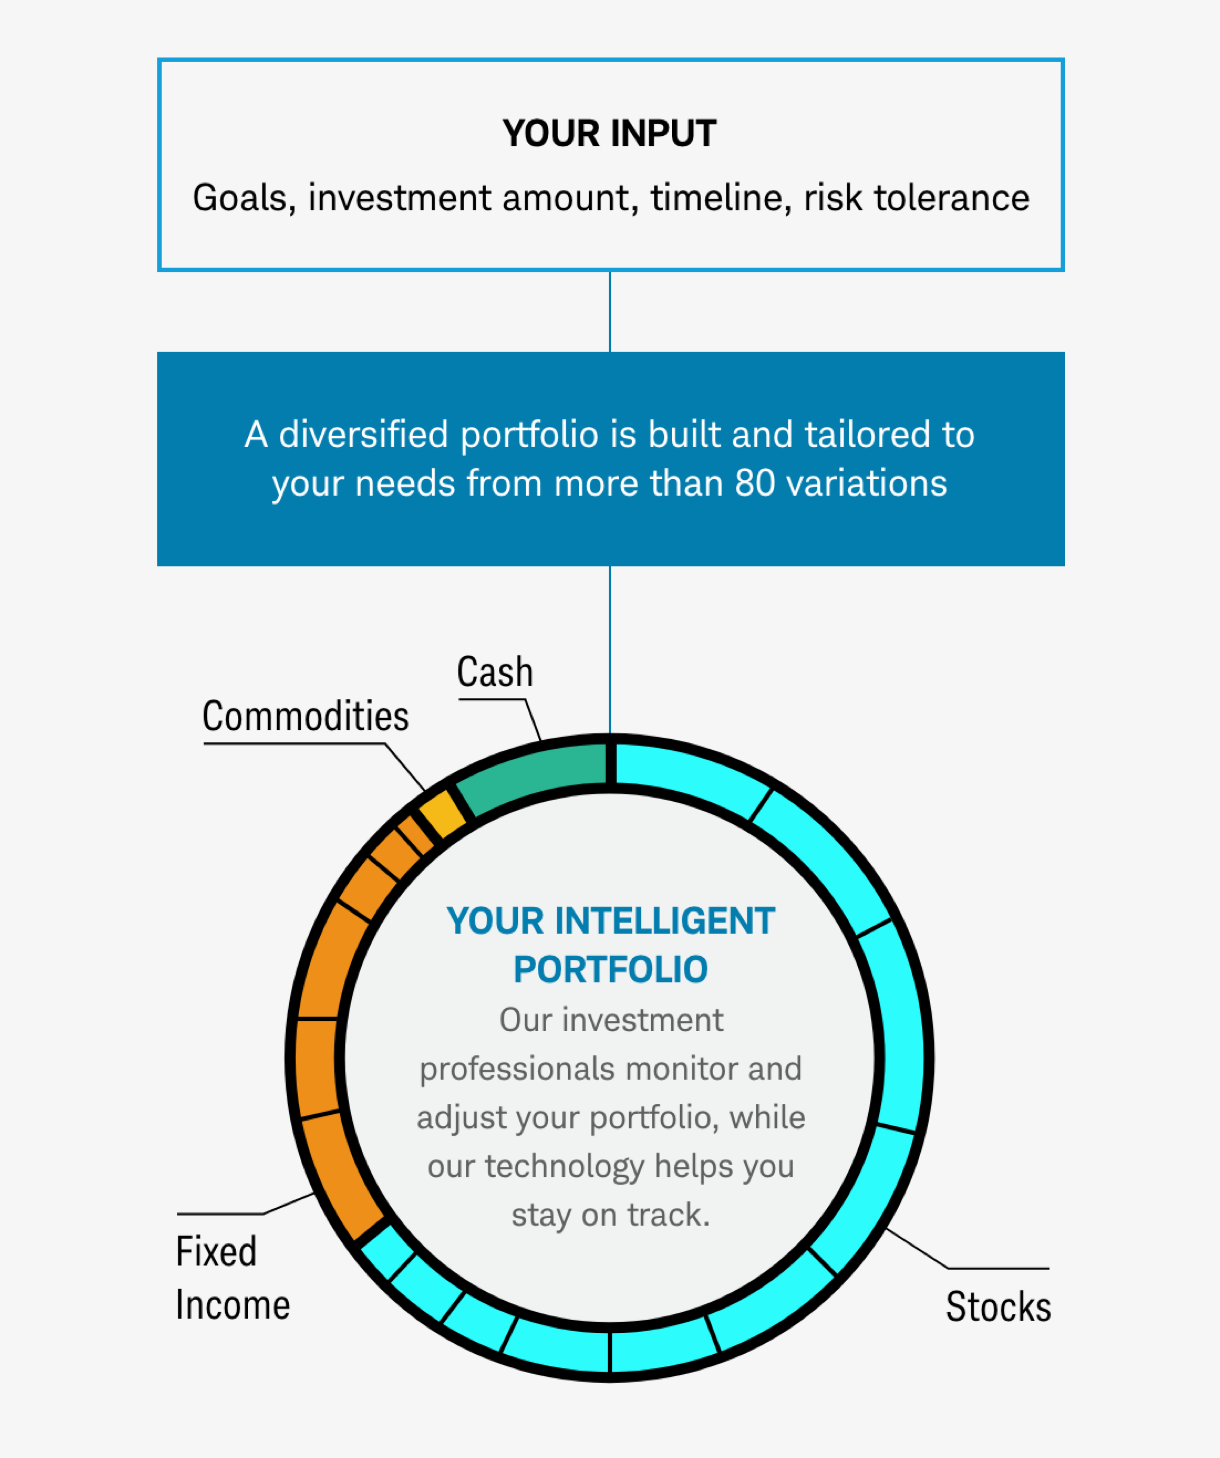 Input your goals, investment amount, timeline, and risk tolerance, and a diversified portfolio will be built and tailored to your needs.